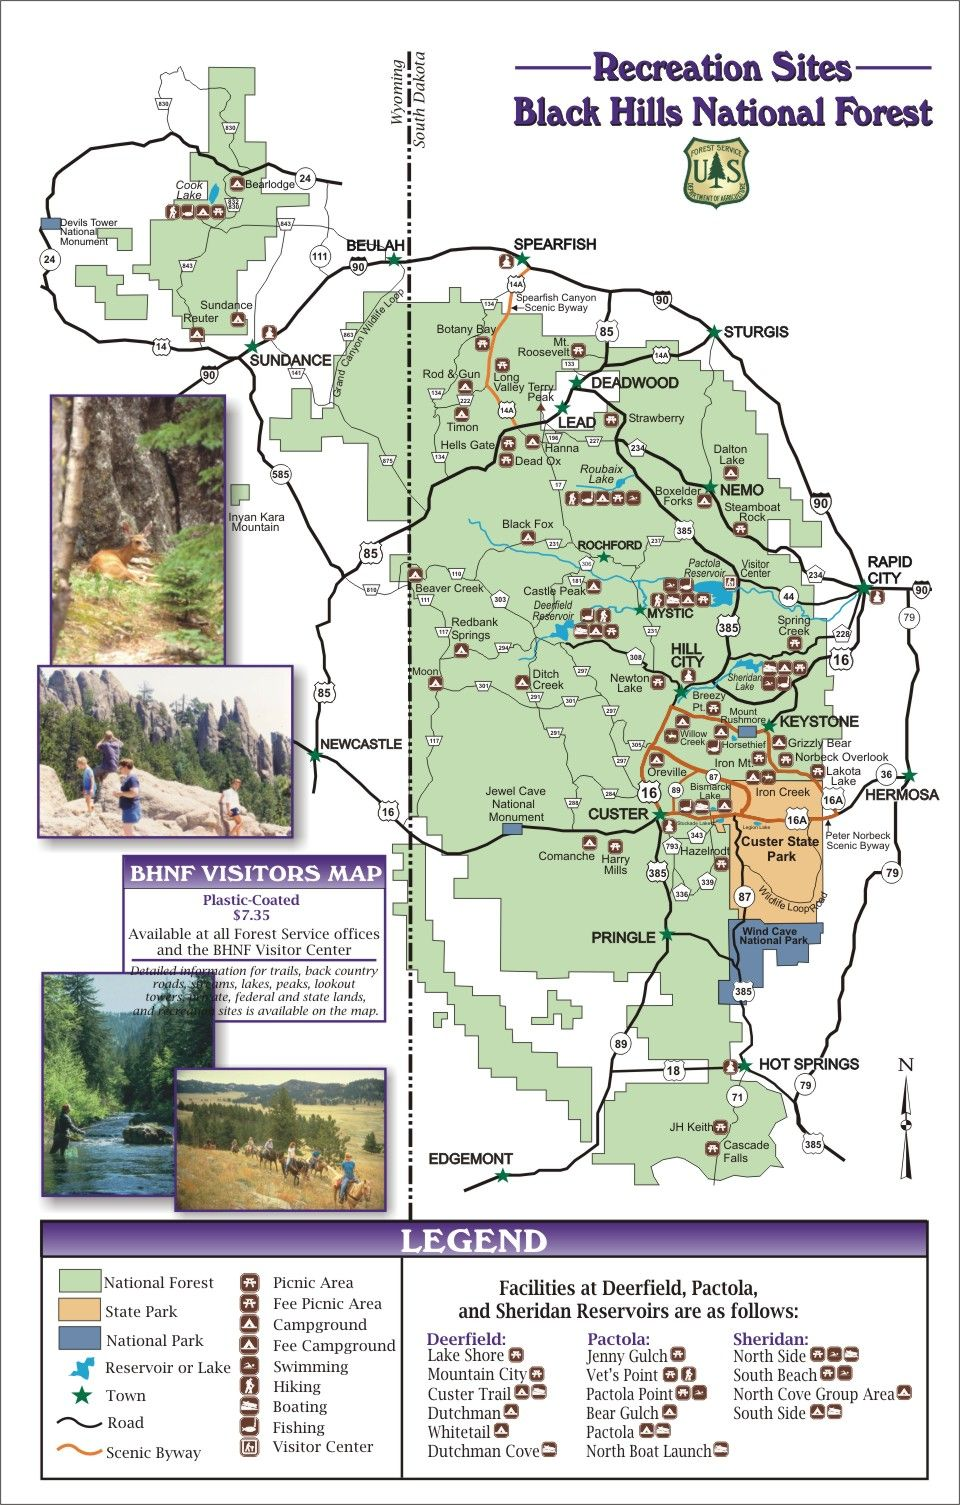 Black hills recreational map | ✈ Vacations & Road Trips in 2019 ...